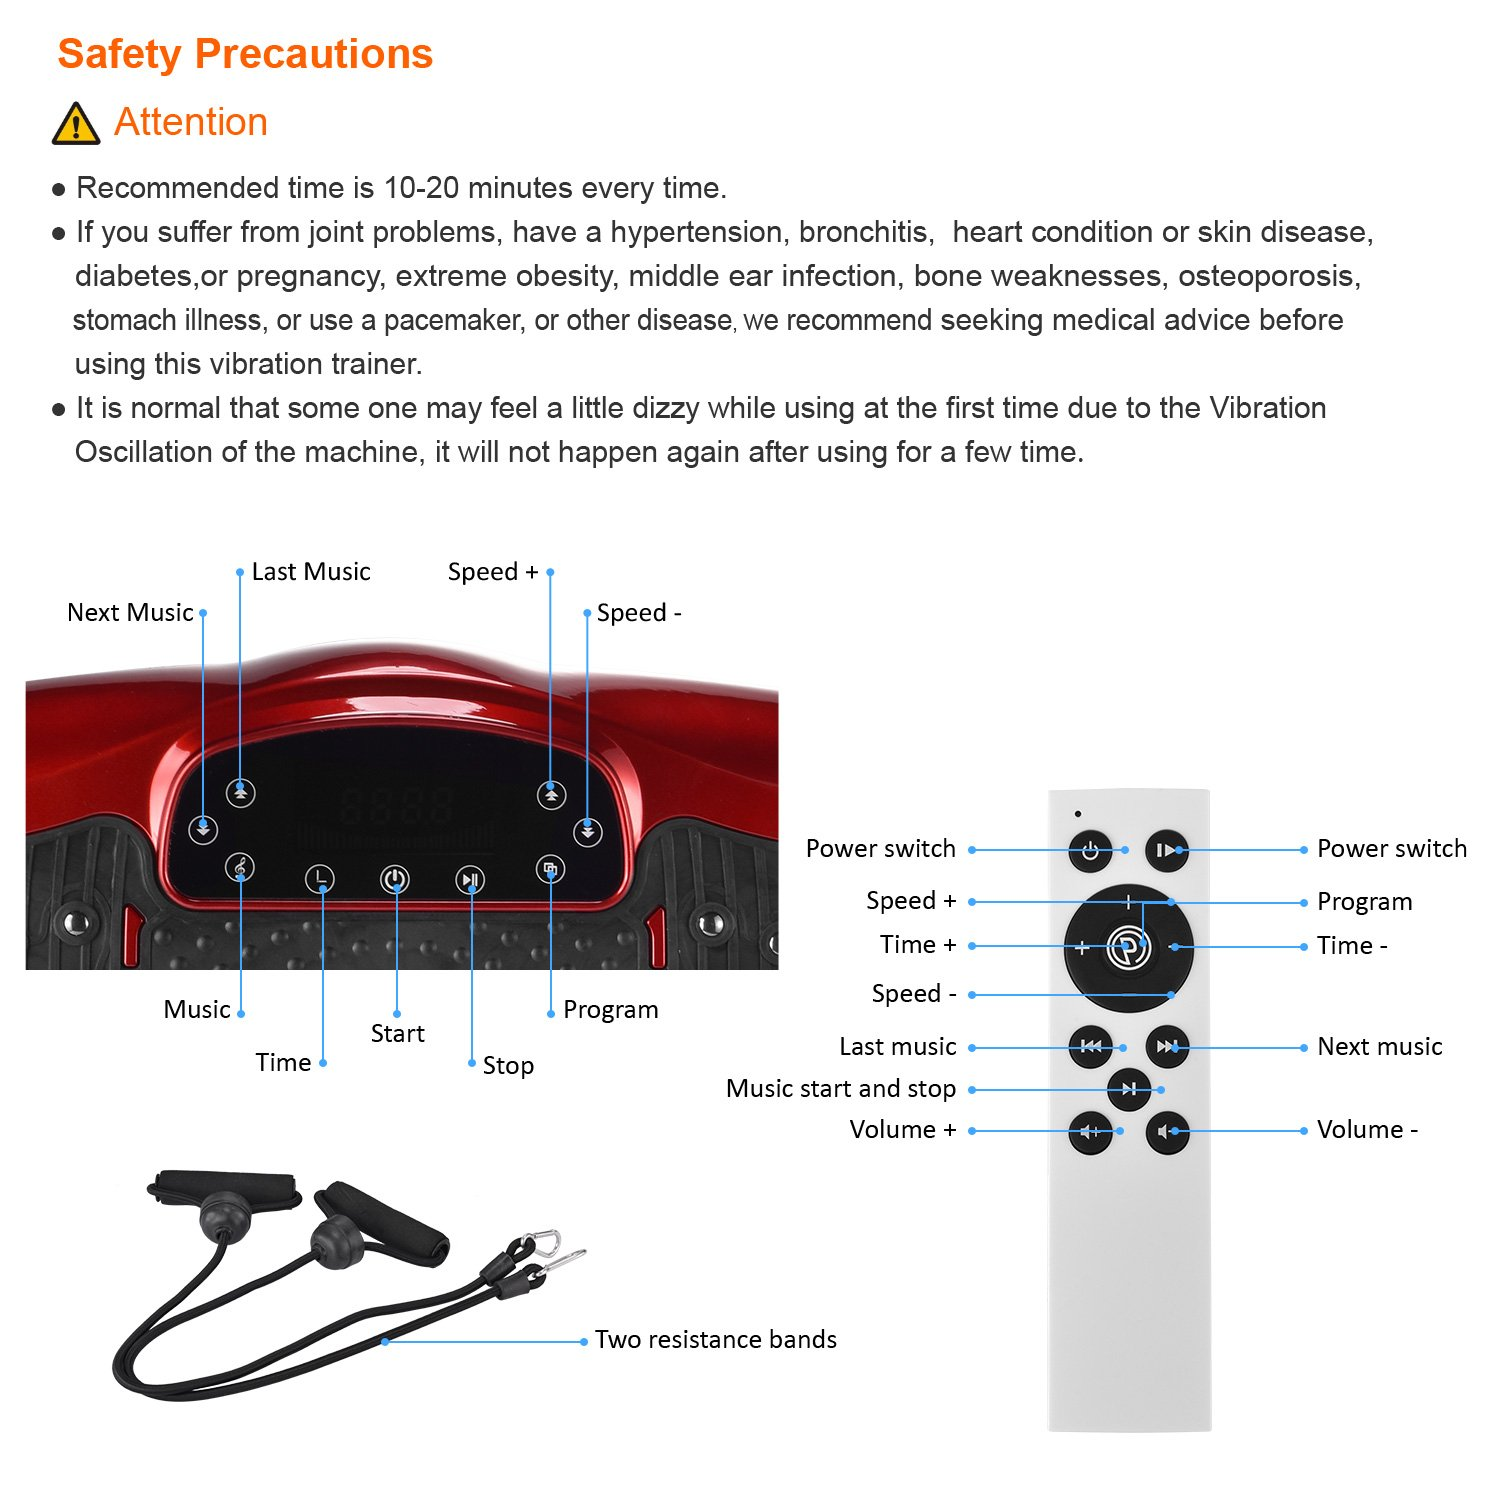 iDeer Vibration Platform Fitness Vibration Plates,Whole Body Vibration Exercise Machine w/Remote Control &Bands,Anti-Slip Fit Massage Workout Vibration Trainer Max User Weight 330lbs (Red09006) by IDEER LIFE (Image #7)